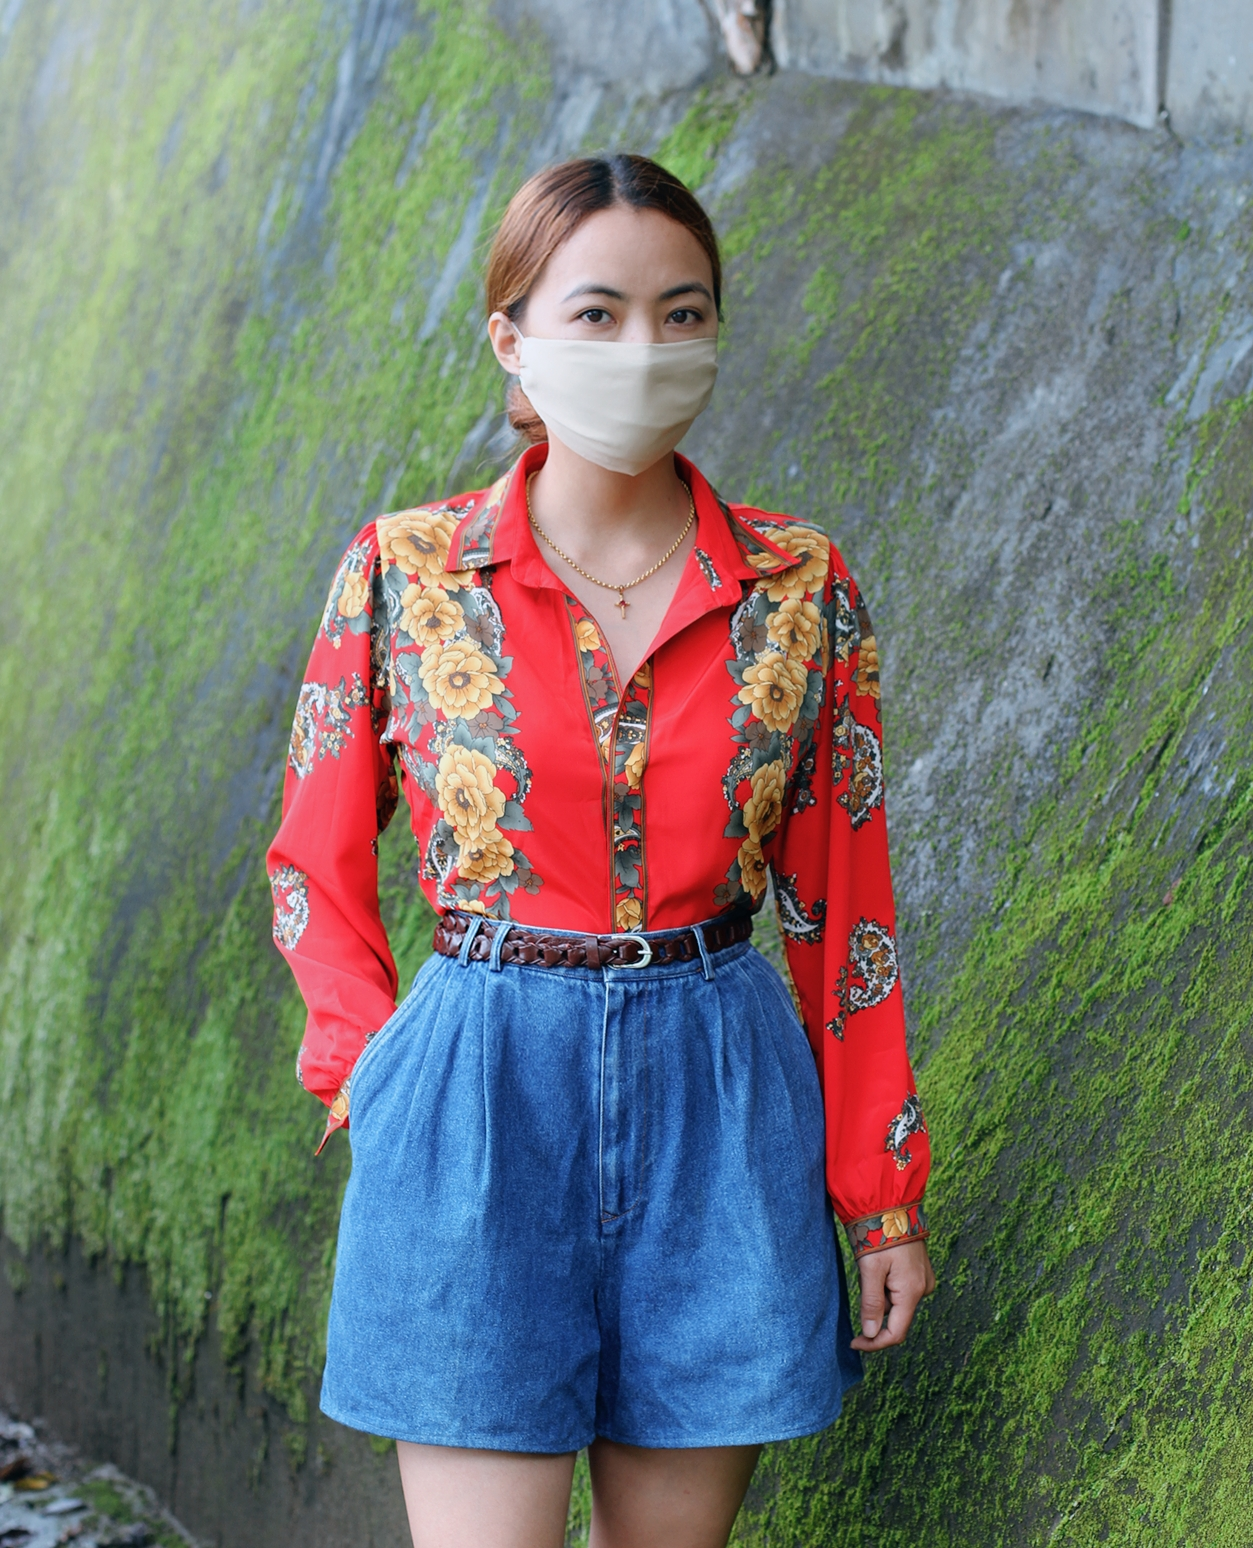 Rootsandleisure_Mask Fashion_Mekhalamama